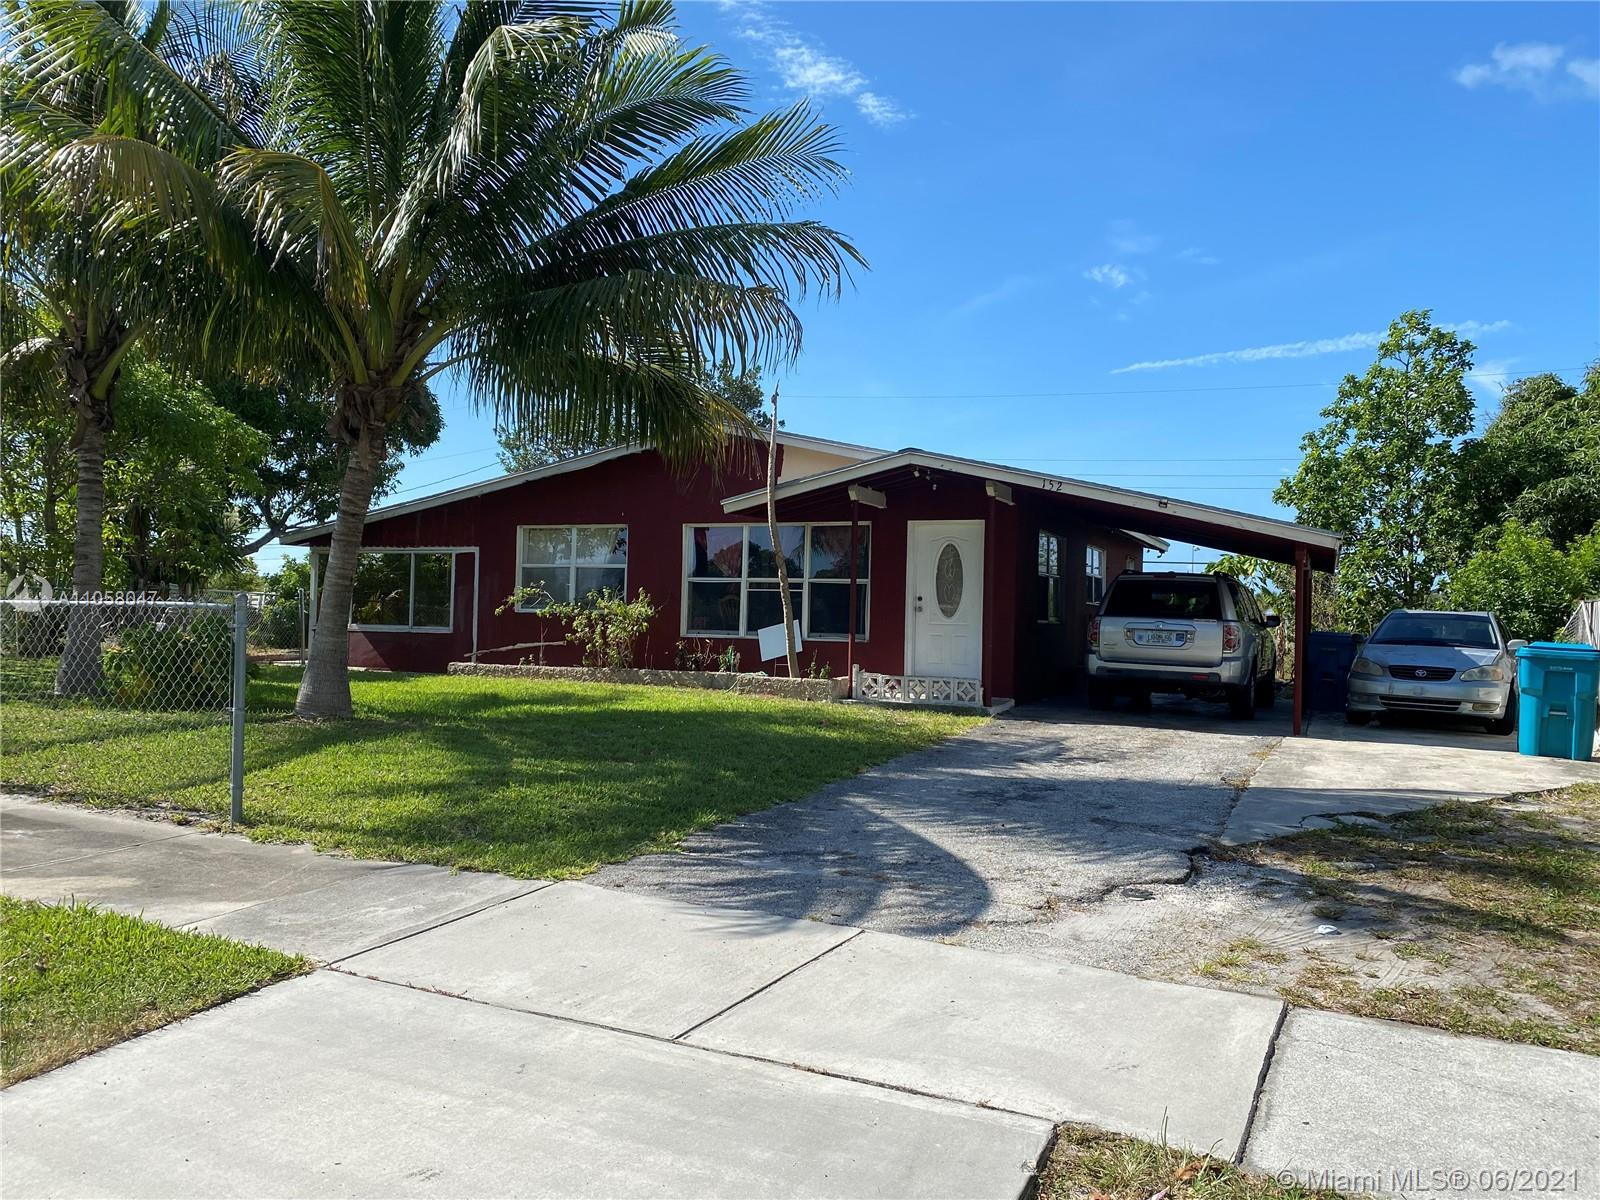 Single family house located in Boynton Beach with great protentional! Features a great front yard, h